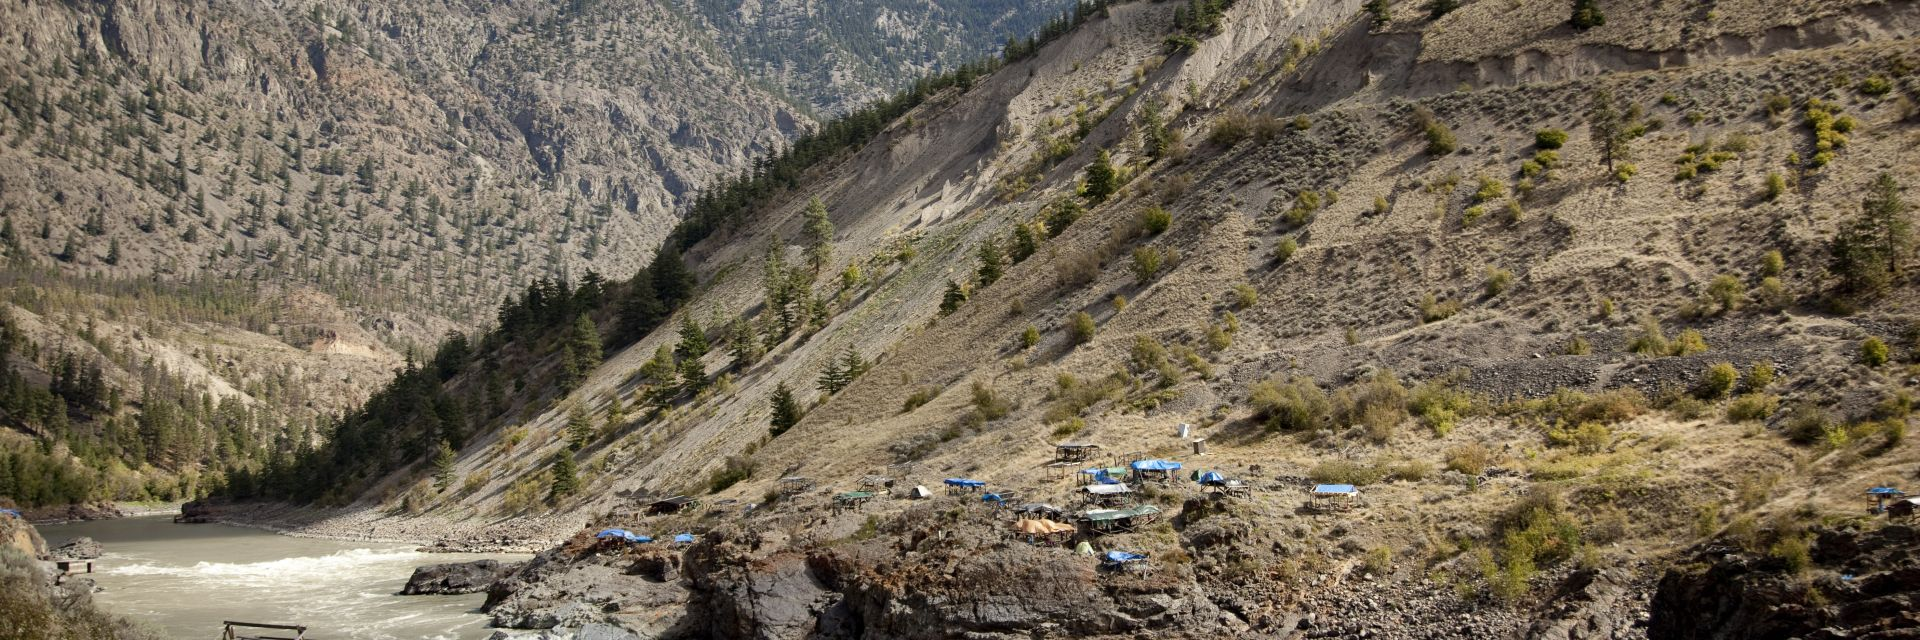 Tents are pitched on both sides of a river at the bottom of hill in Lillooet, BC.